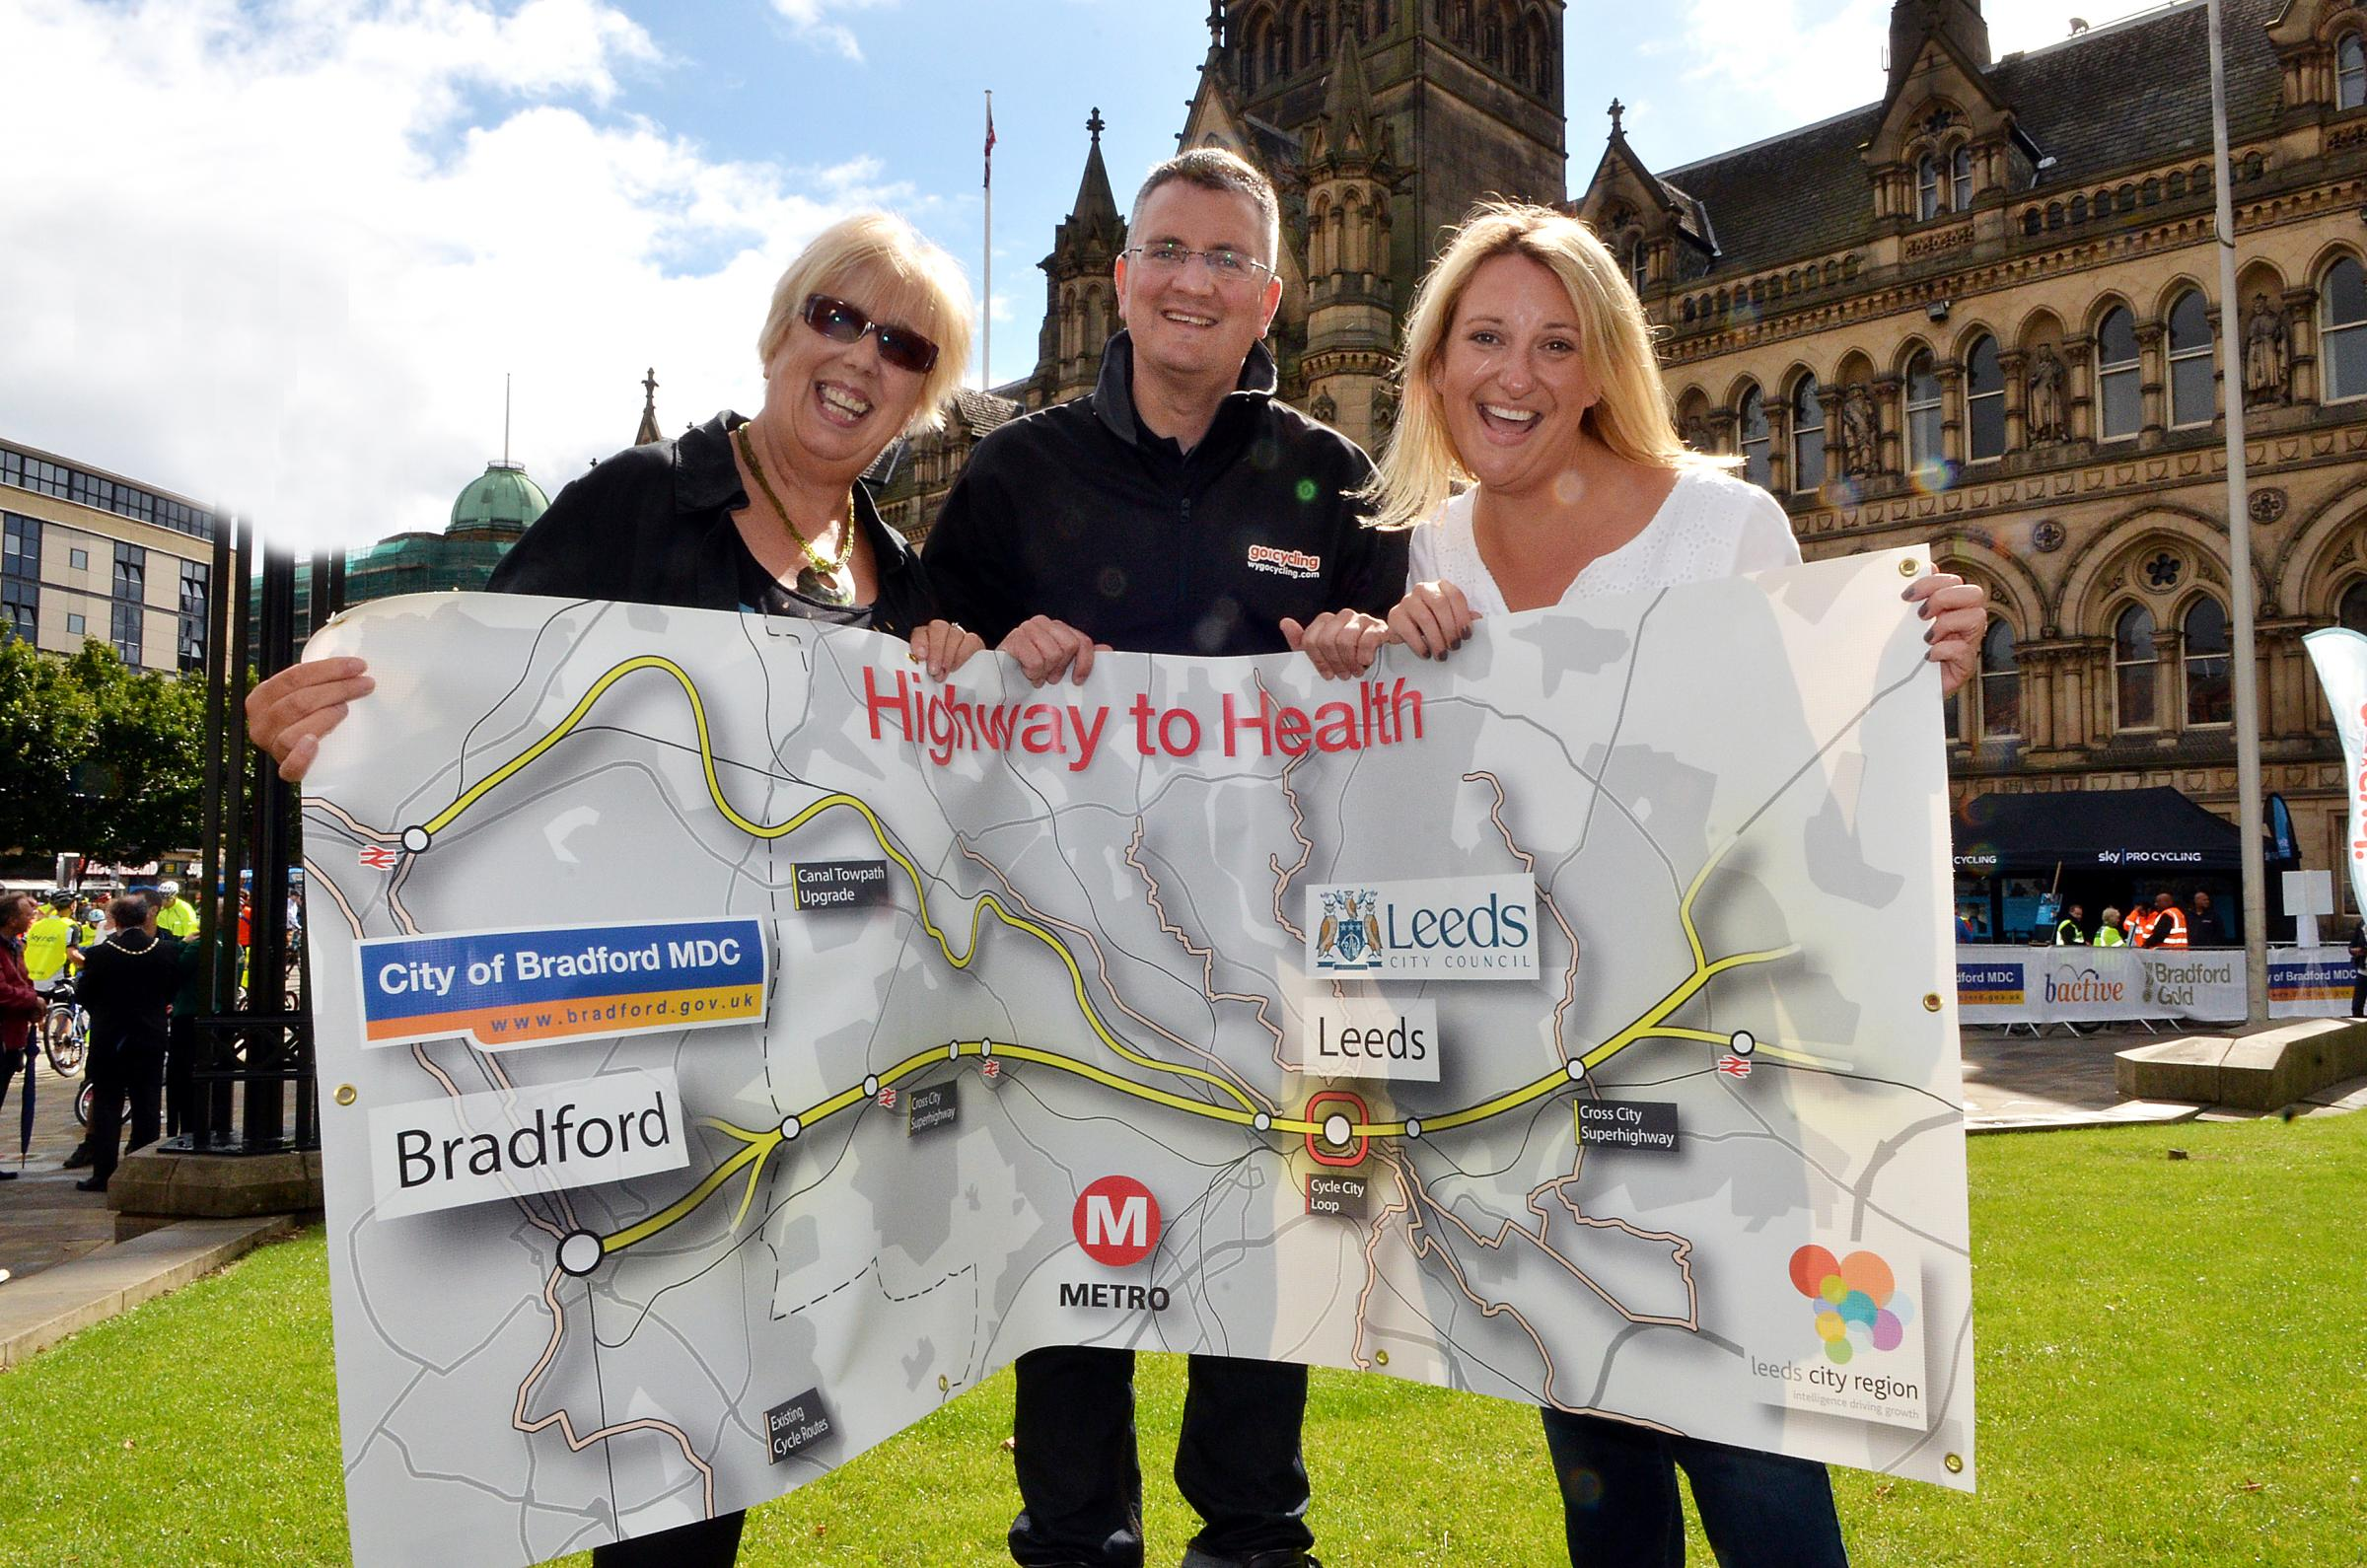 £29 million 'Highway To Health' cycling road scheme announced